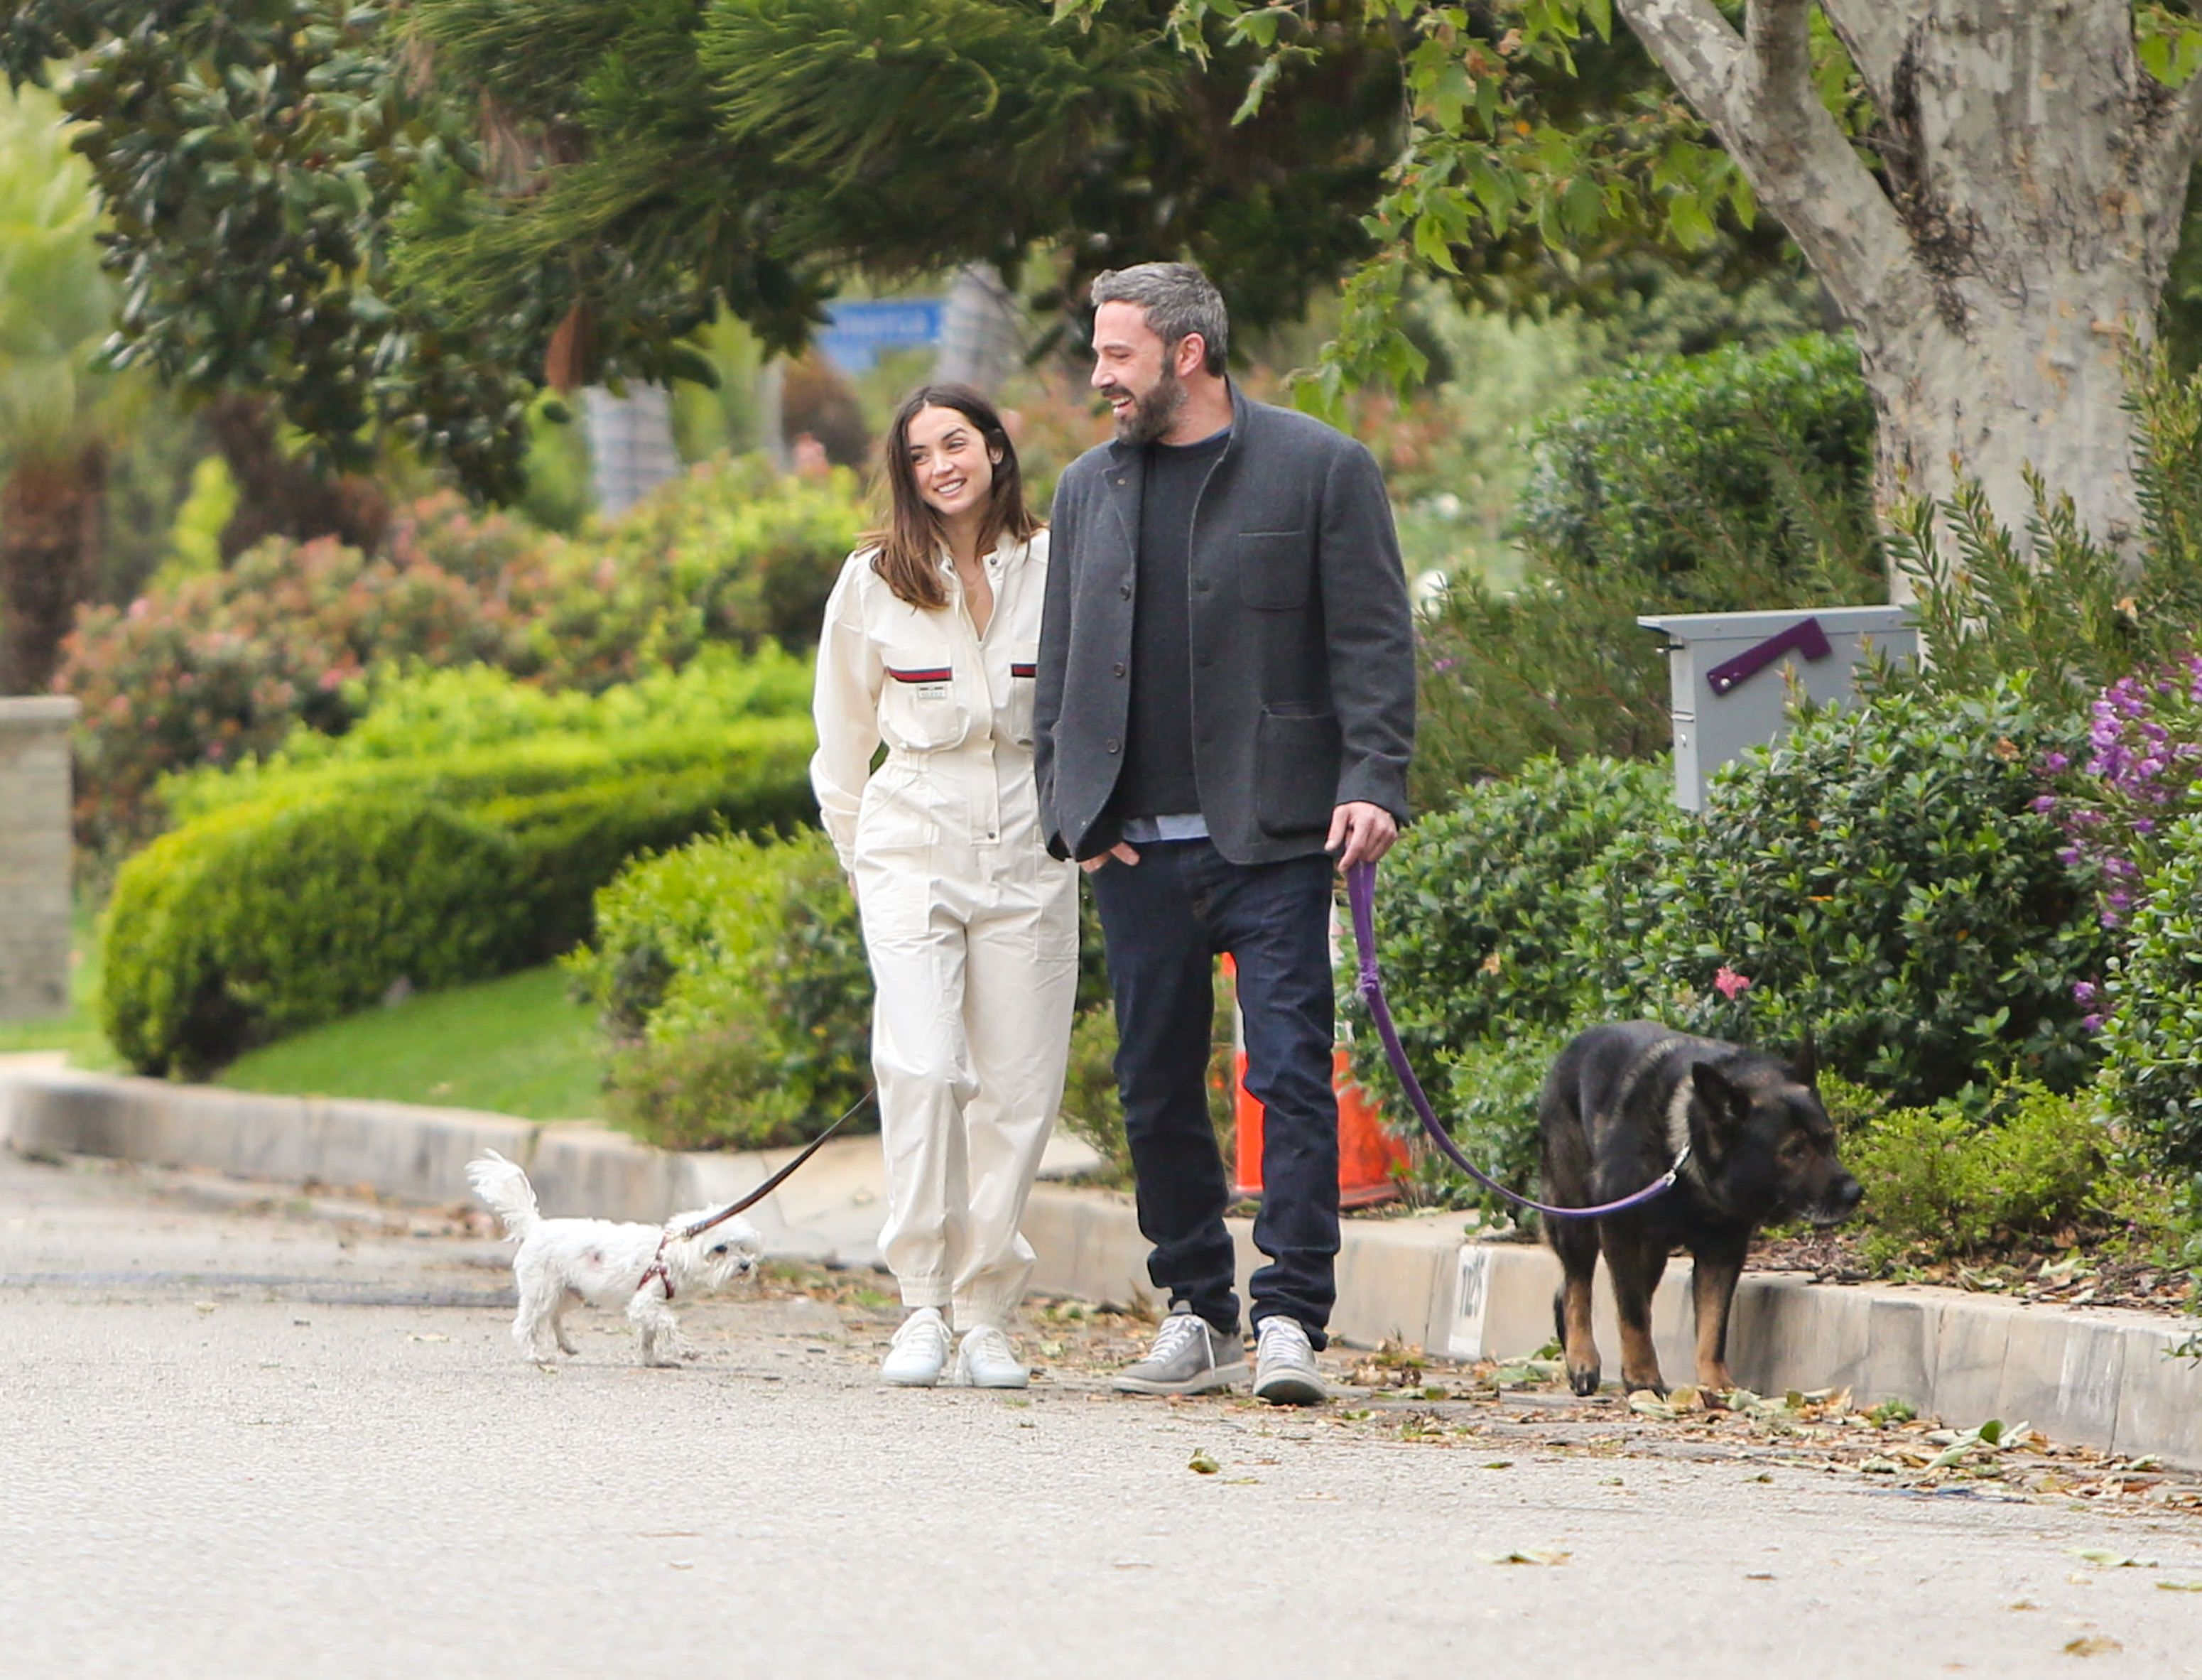 Ana de Armas and Ben Affleck walking their dogs together in LA.